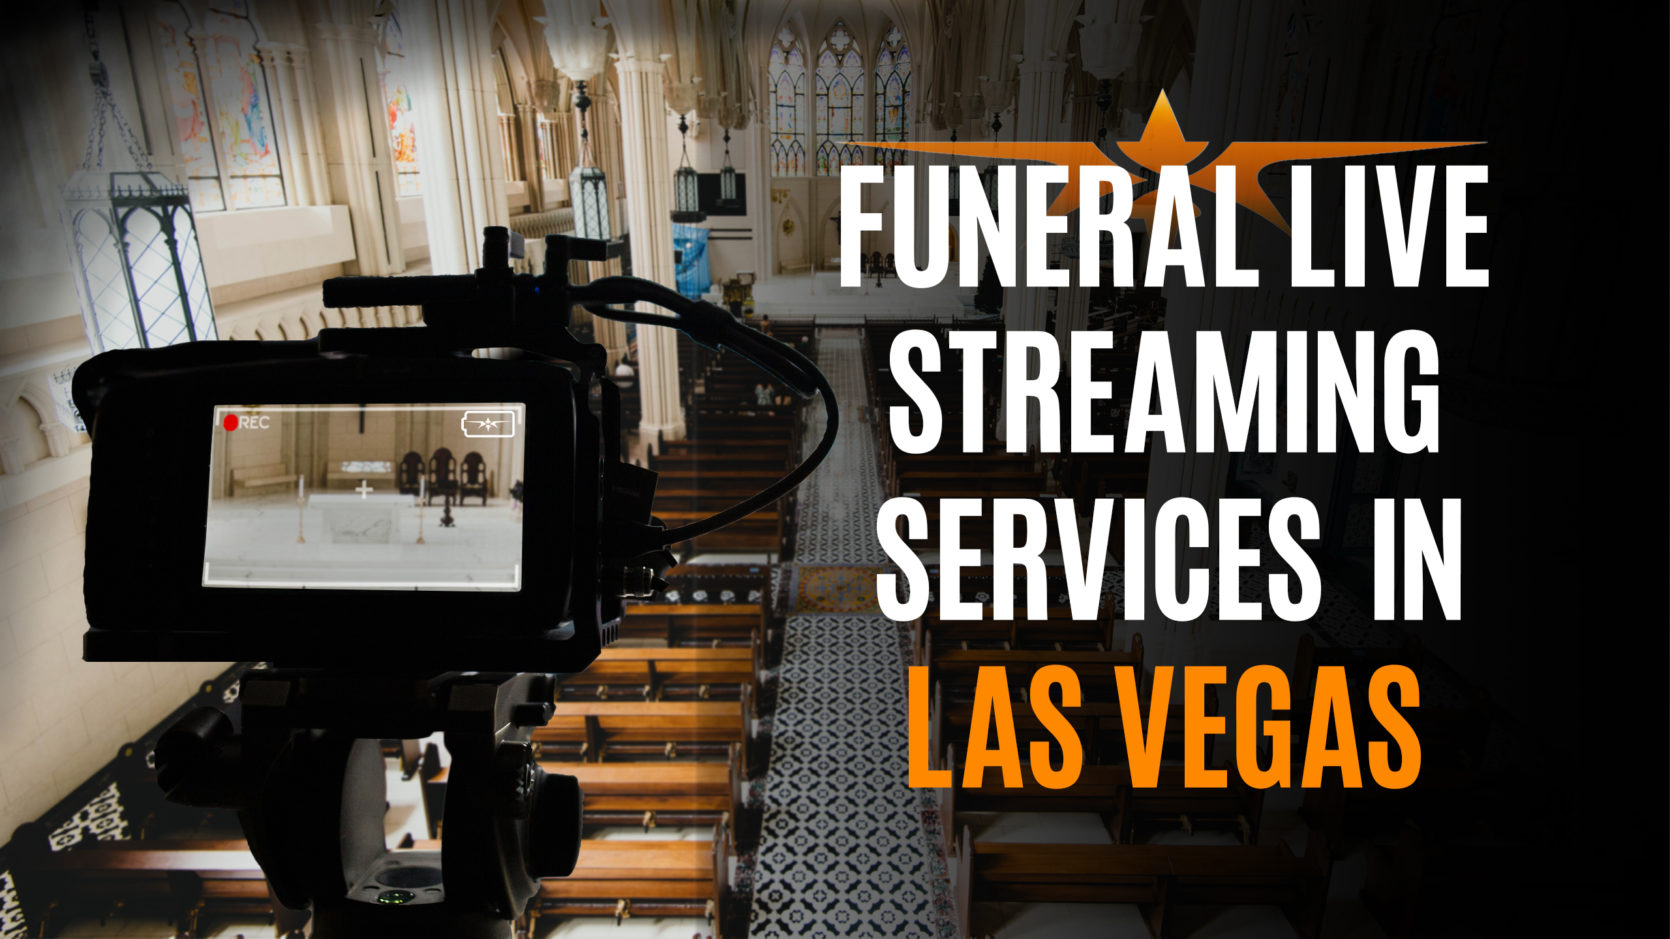 Funeral Live Streaming Services in Las Vegas